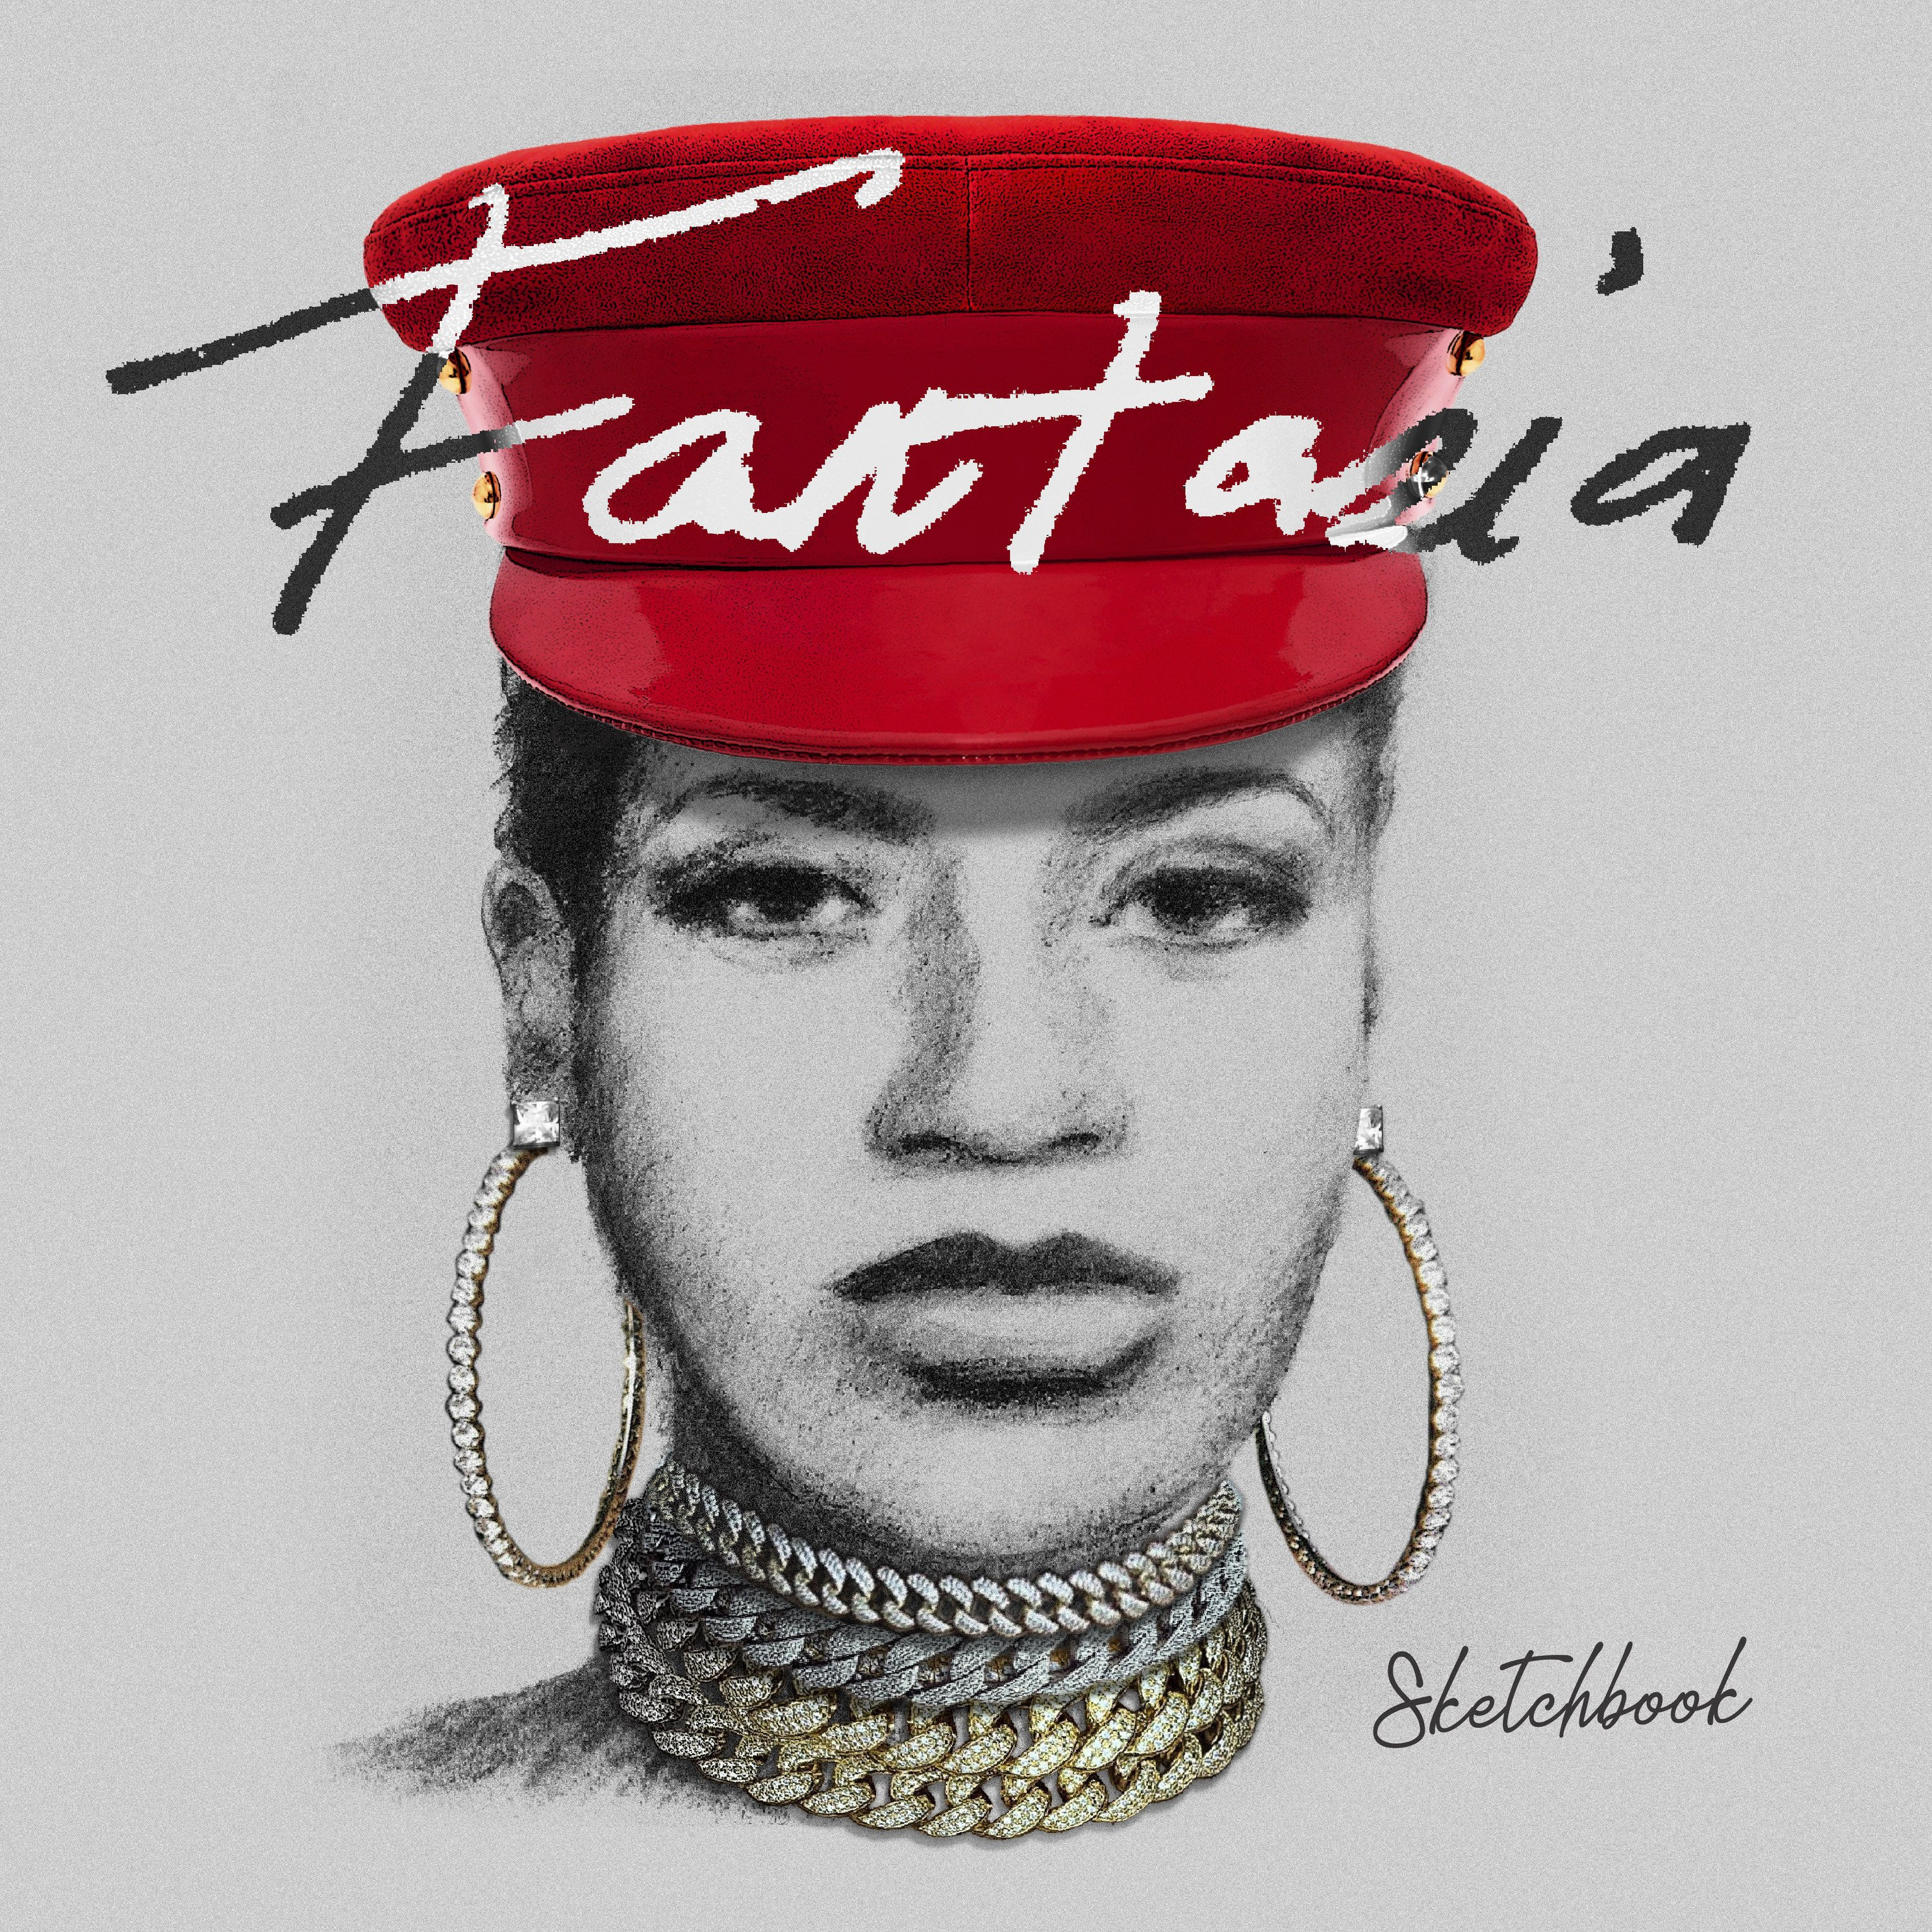 Review: Fantasia won't be boxed in on 'Sketchbook' album